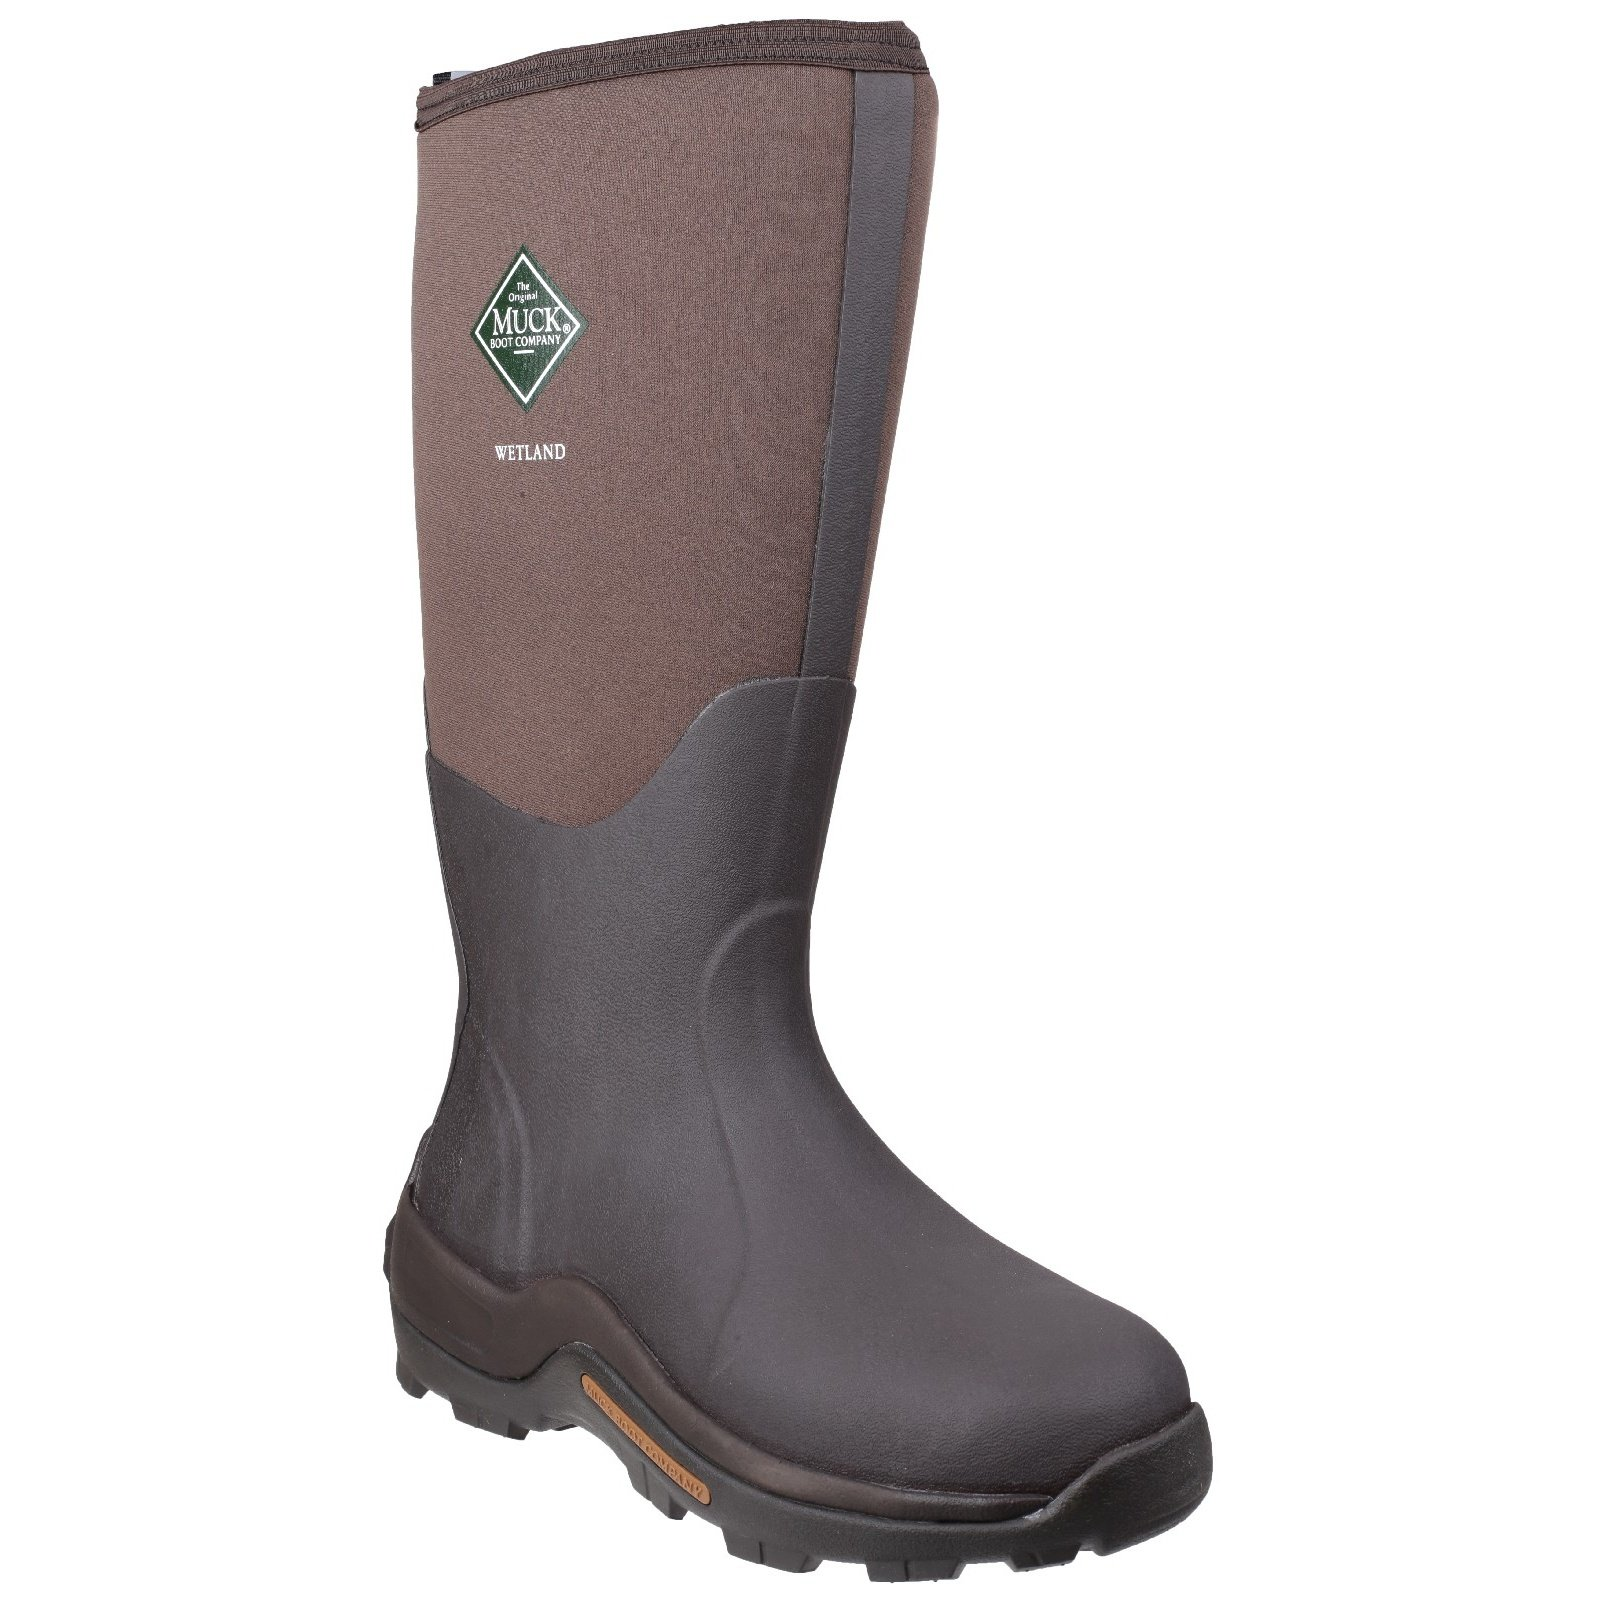 Muck Boot Unisex Wetland Hi Wellington Boots (7 M US / 8 W US) (Bark) by Muck Boot